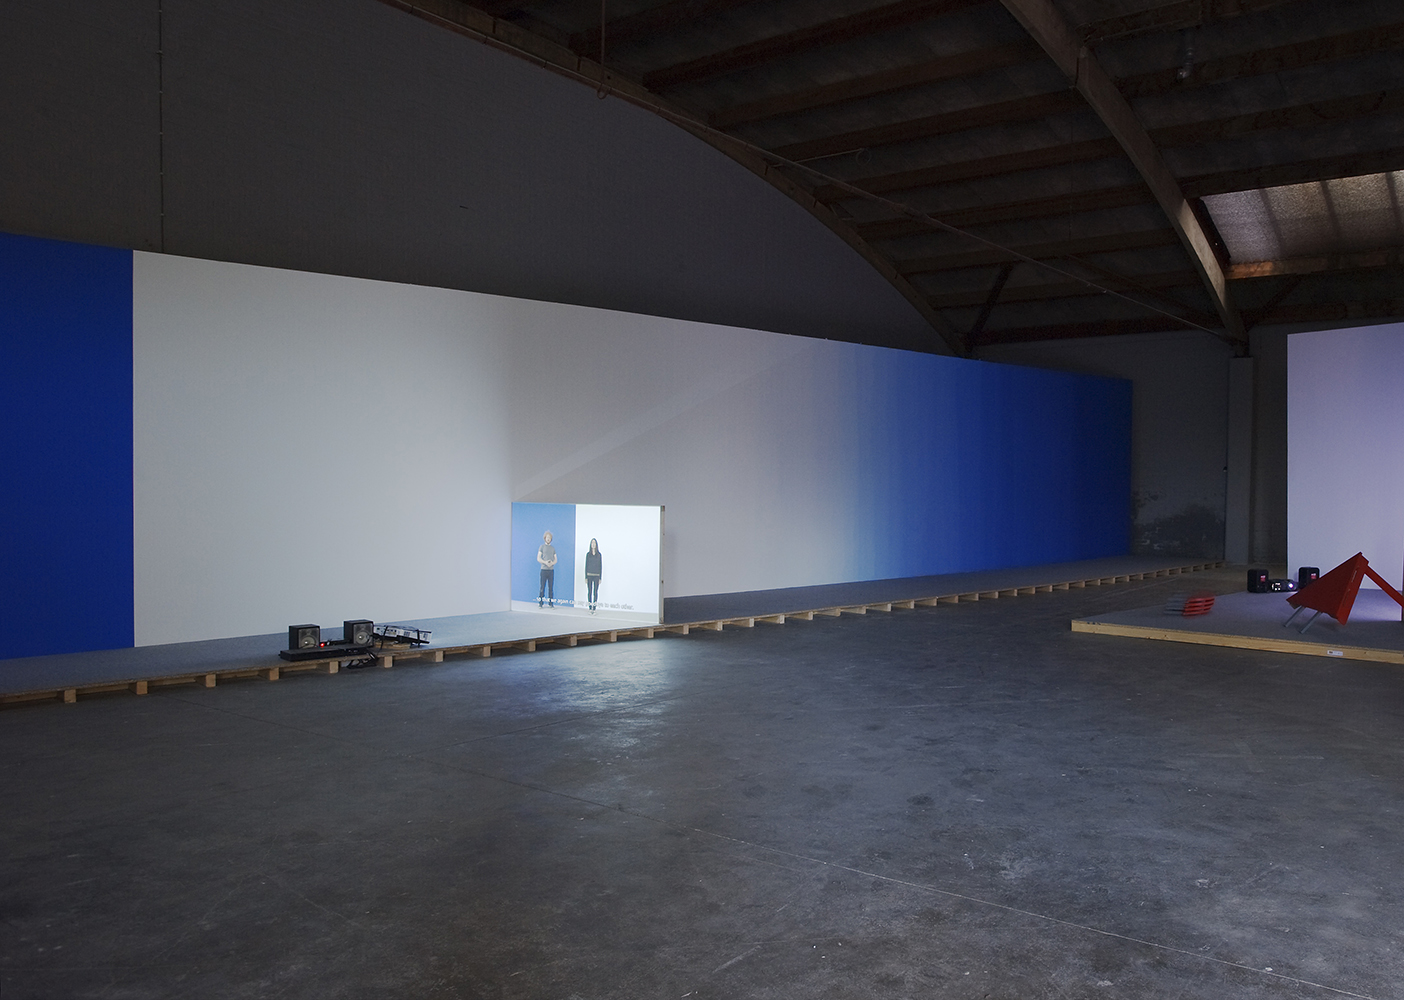 Installation view at DeServicegarage (2012) | Photo: Cassander Eeftinck Schattenkerk